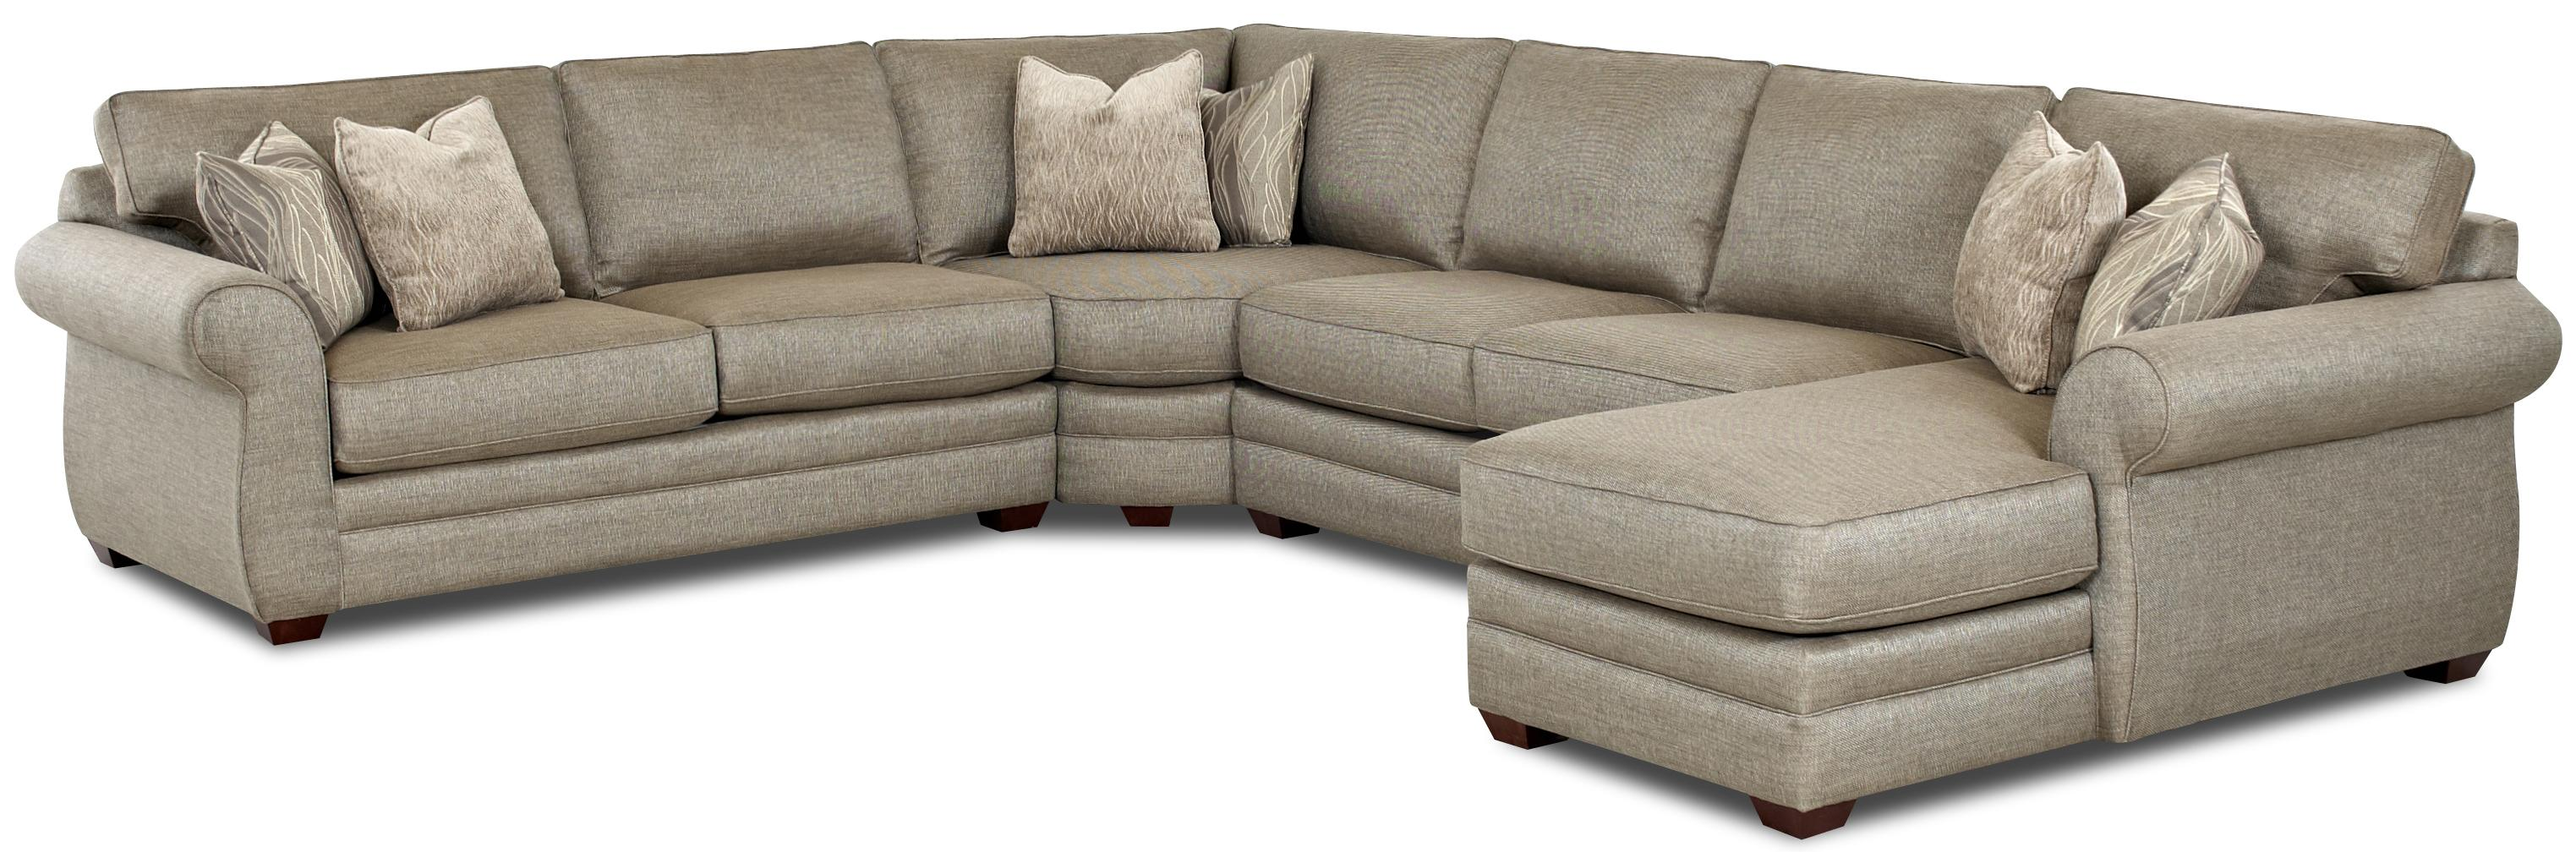 Klaussner Clanton Transitional Sectional Sofa with Right Chaise and Full Sleeper - AHFA - Sofa Sectional Dealer Locator  sc 1 st  Furniture Dealer Locator - Find your furniture : sectional sofa sleeper with chaise - Sectionals, Sofas & Couches